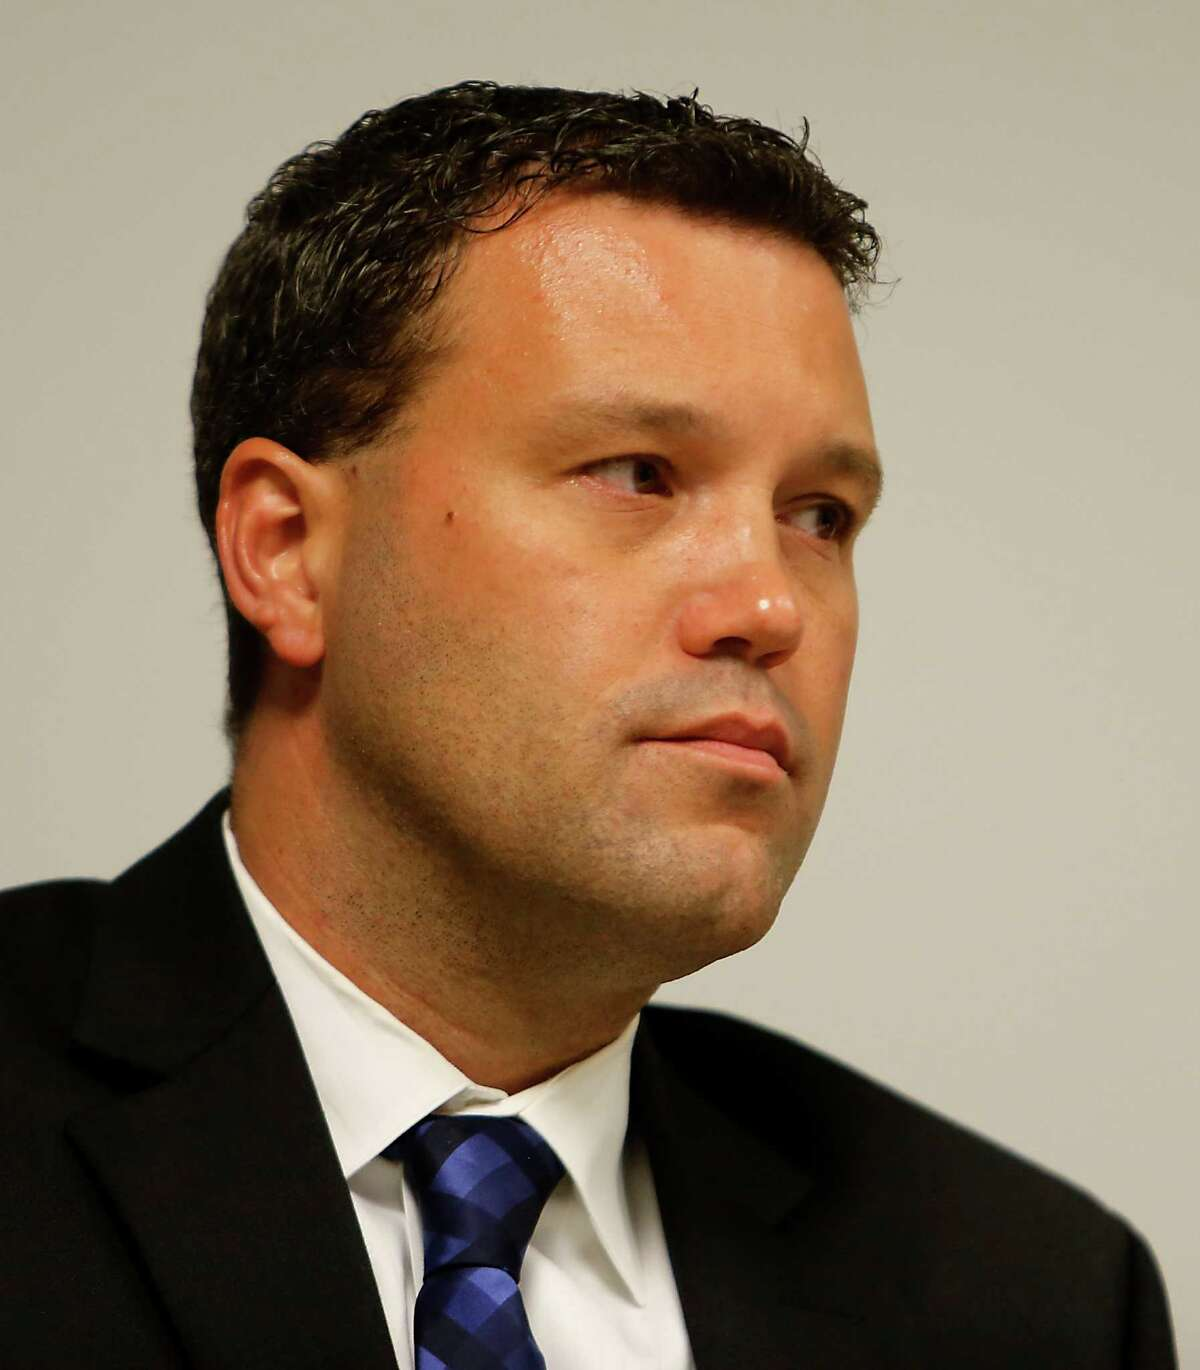 Former Houston homicide detective Sgt. Ryan Chandler during a two-day hearing to try and win his job back after HPD Chief Charles McClelland fired Chandler and disciplined seven others in early April, after a lengthy internal affairs investigation found Chandler failed to go to crime scenes, didn't interview witnesses, and took years to update case files Tuesday, Aug. 19, 2014, in Houston. ( James Nielsen / Houston Chronicle )